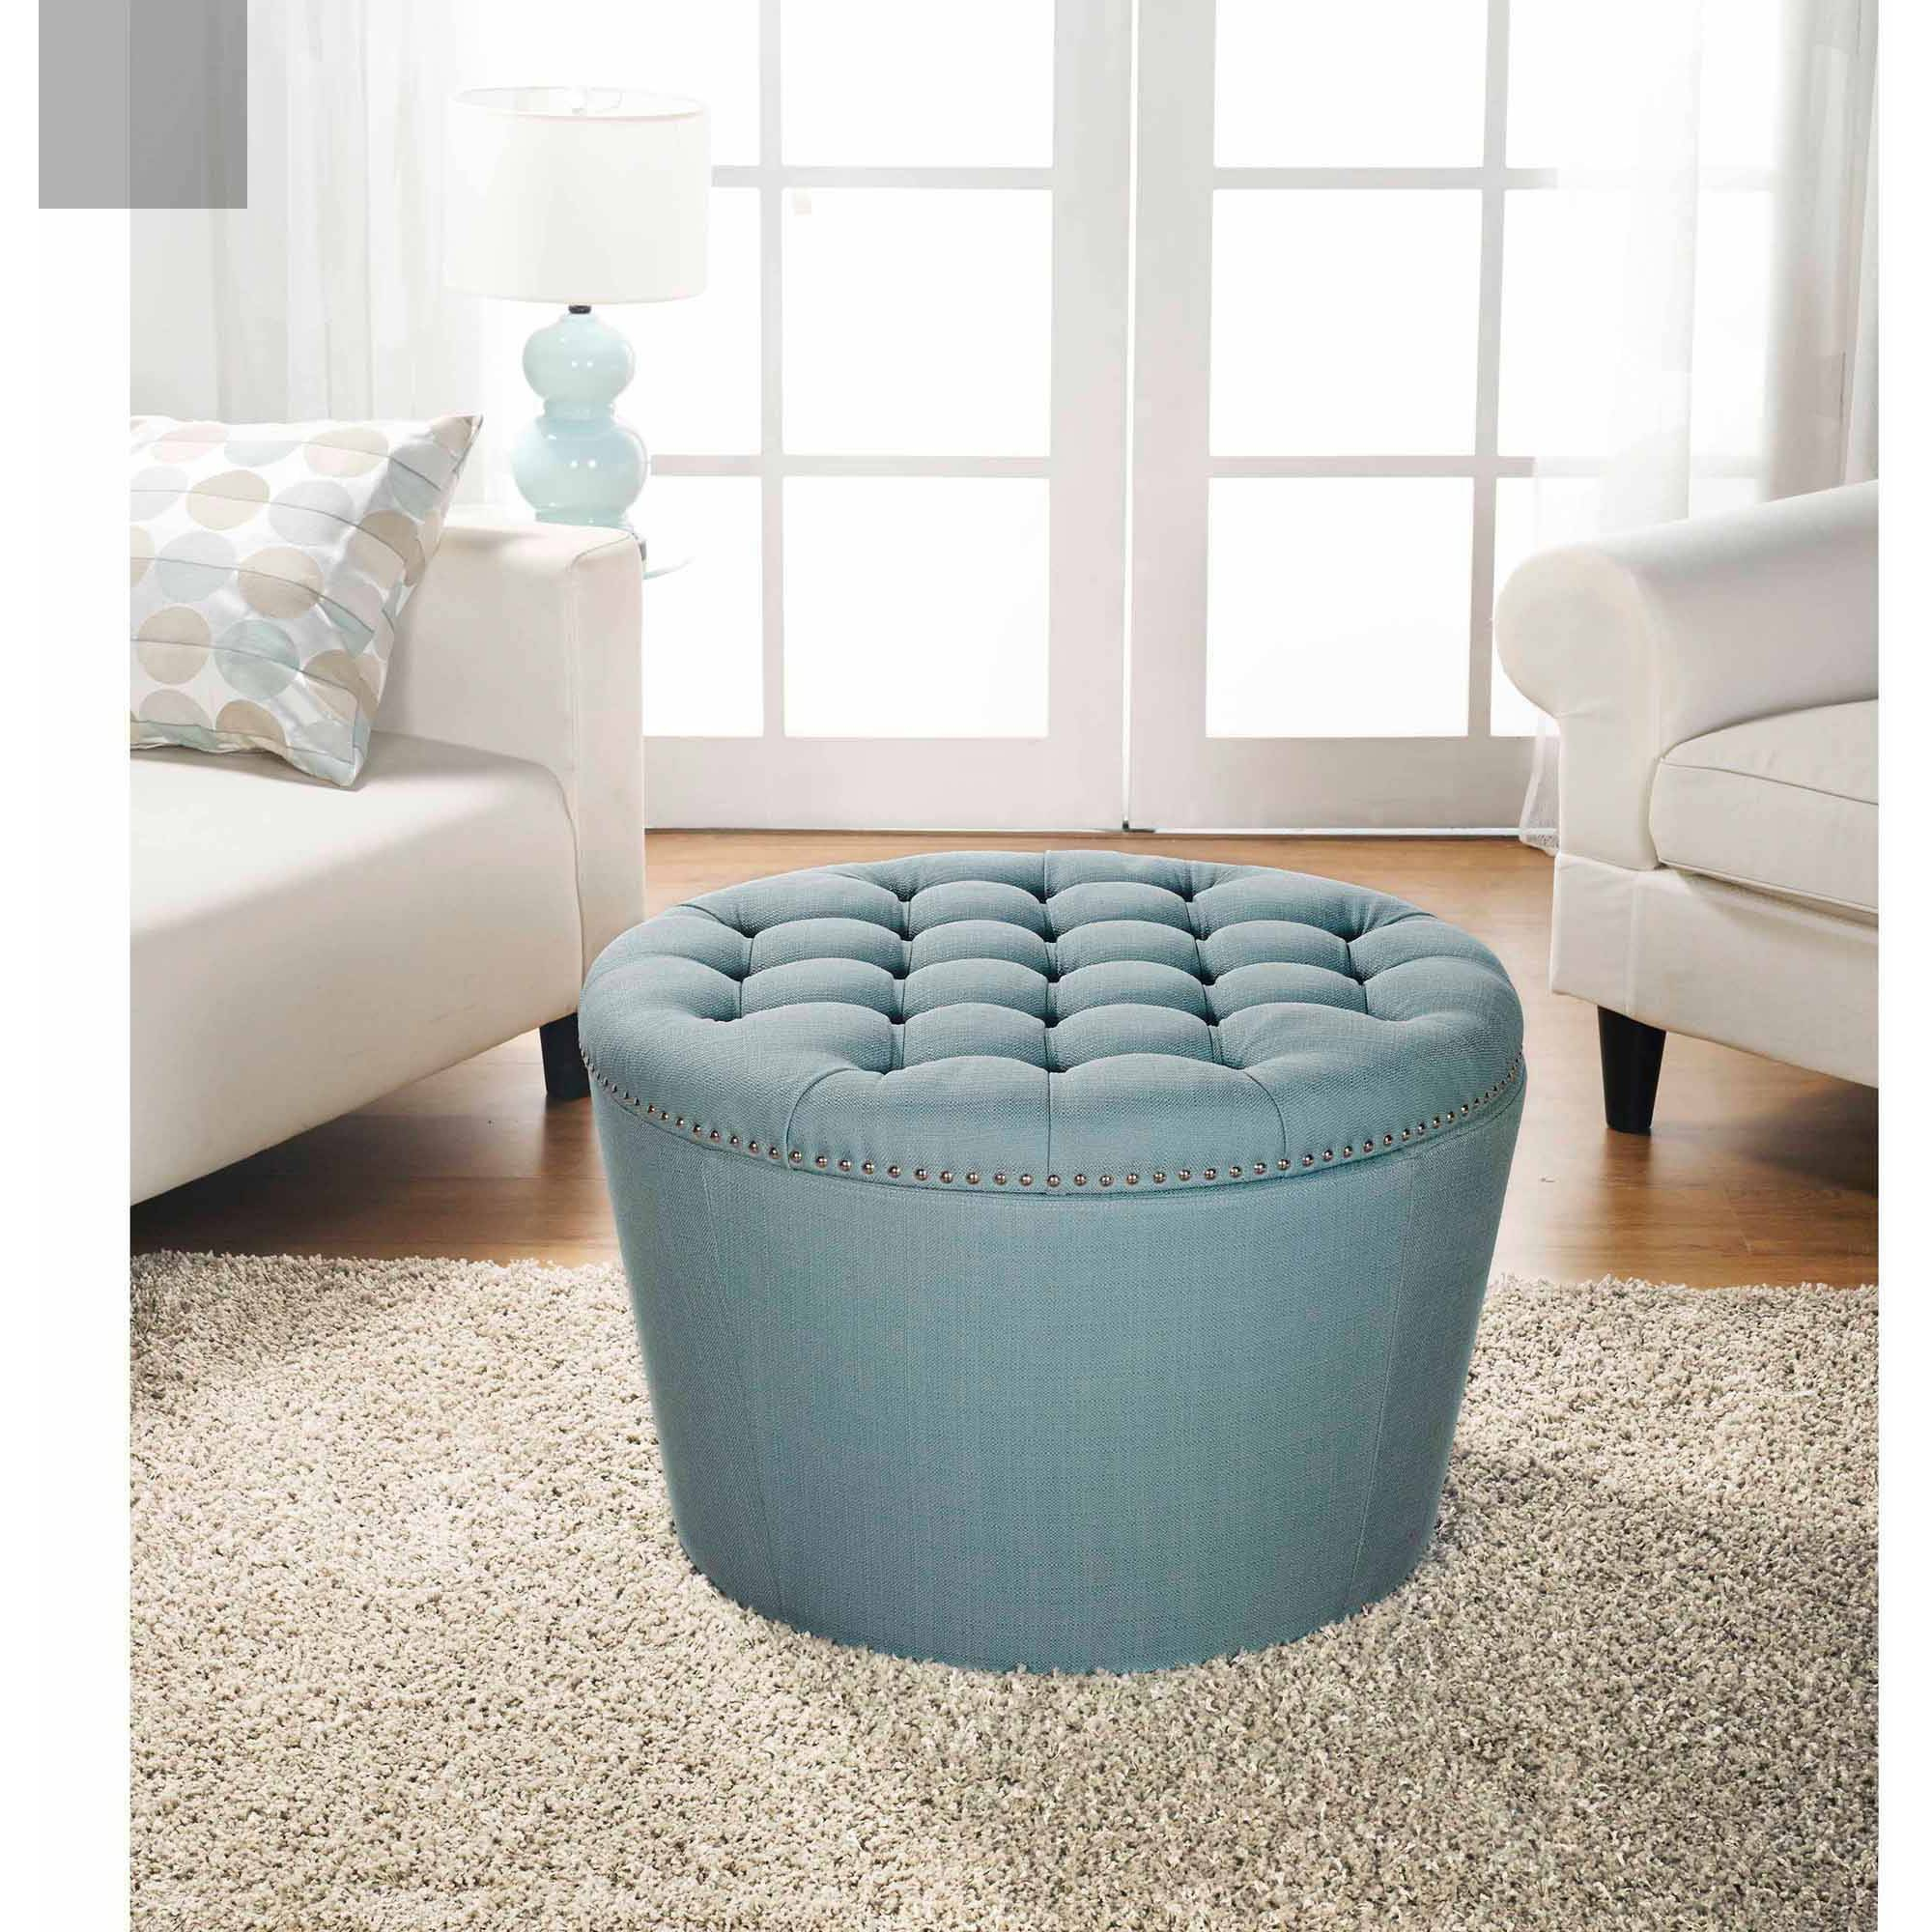 Better Homes And Gardens Round Tufted Storage Ottoman With Nailheads Multiple Finishes Walmart throughout measurements 2000 X 2000